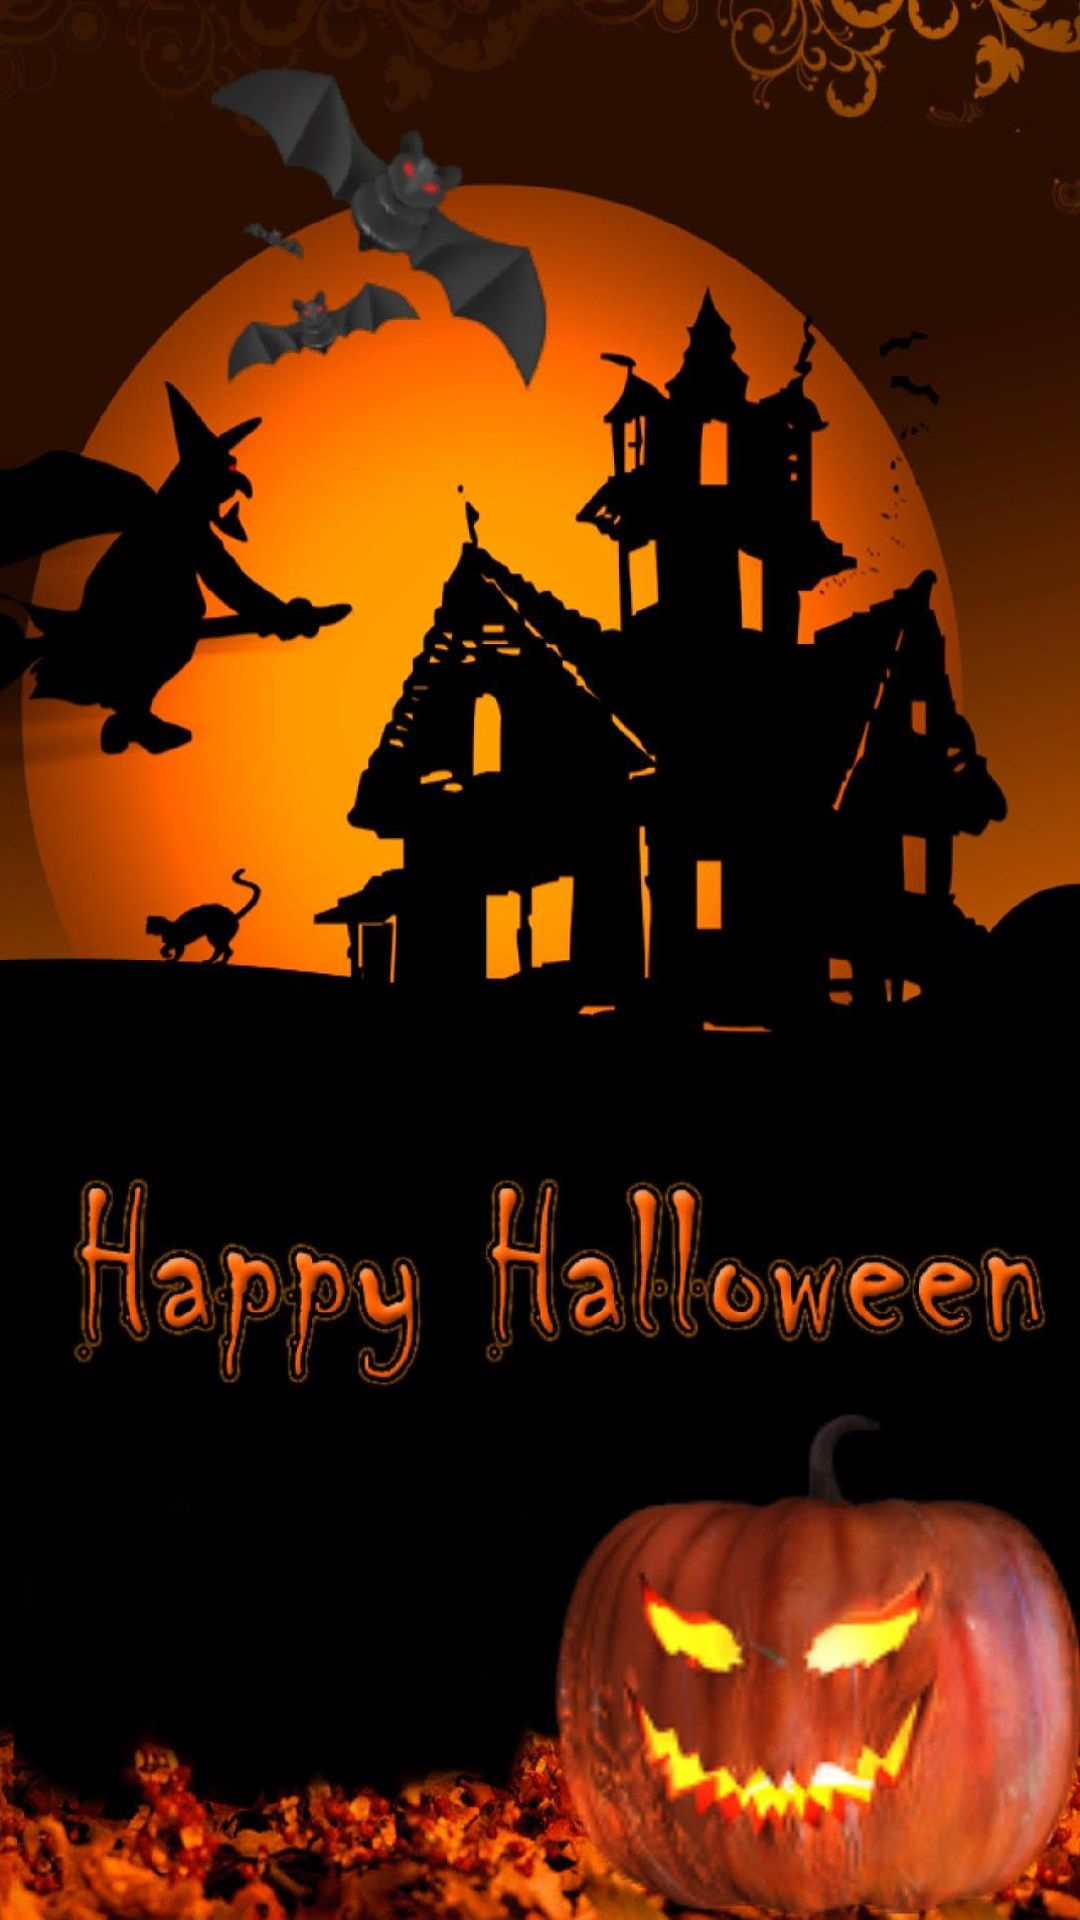 Halloween 2014 wallpaper pentru iPhone 6 si iPhone 6